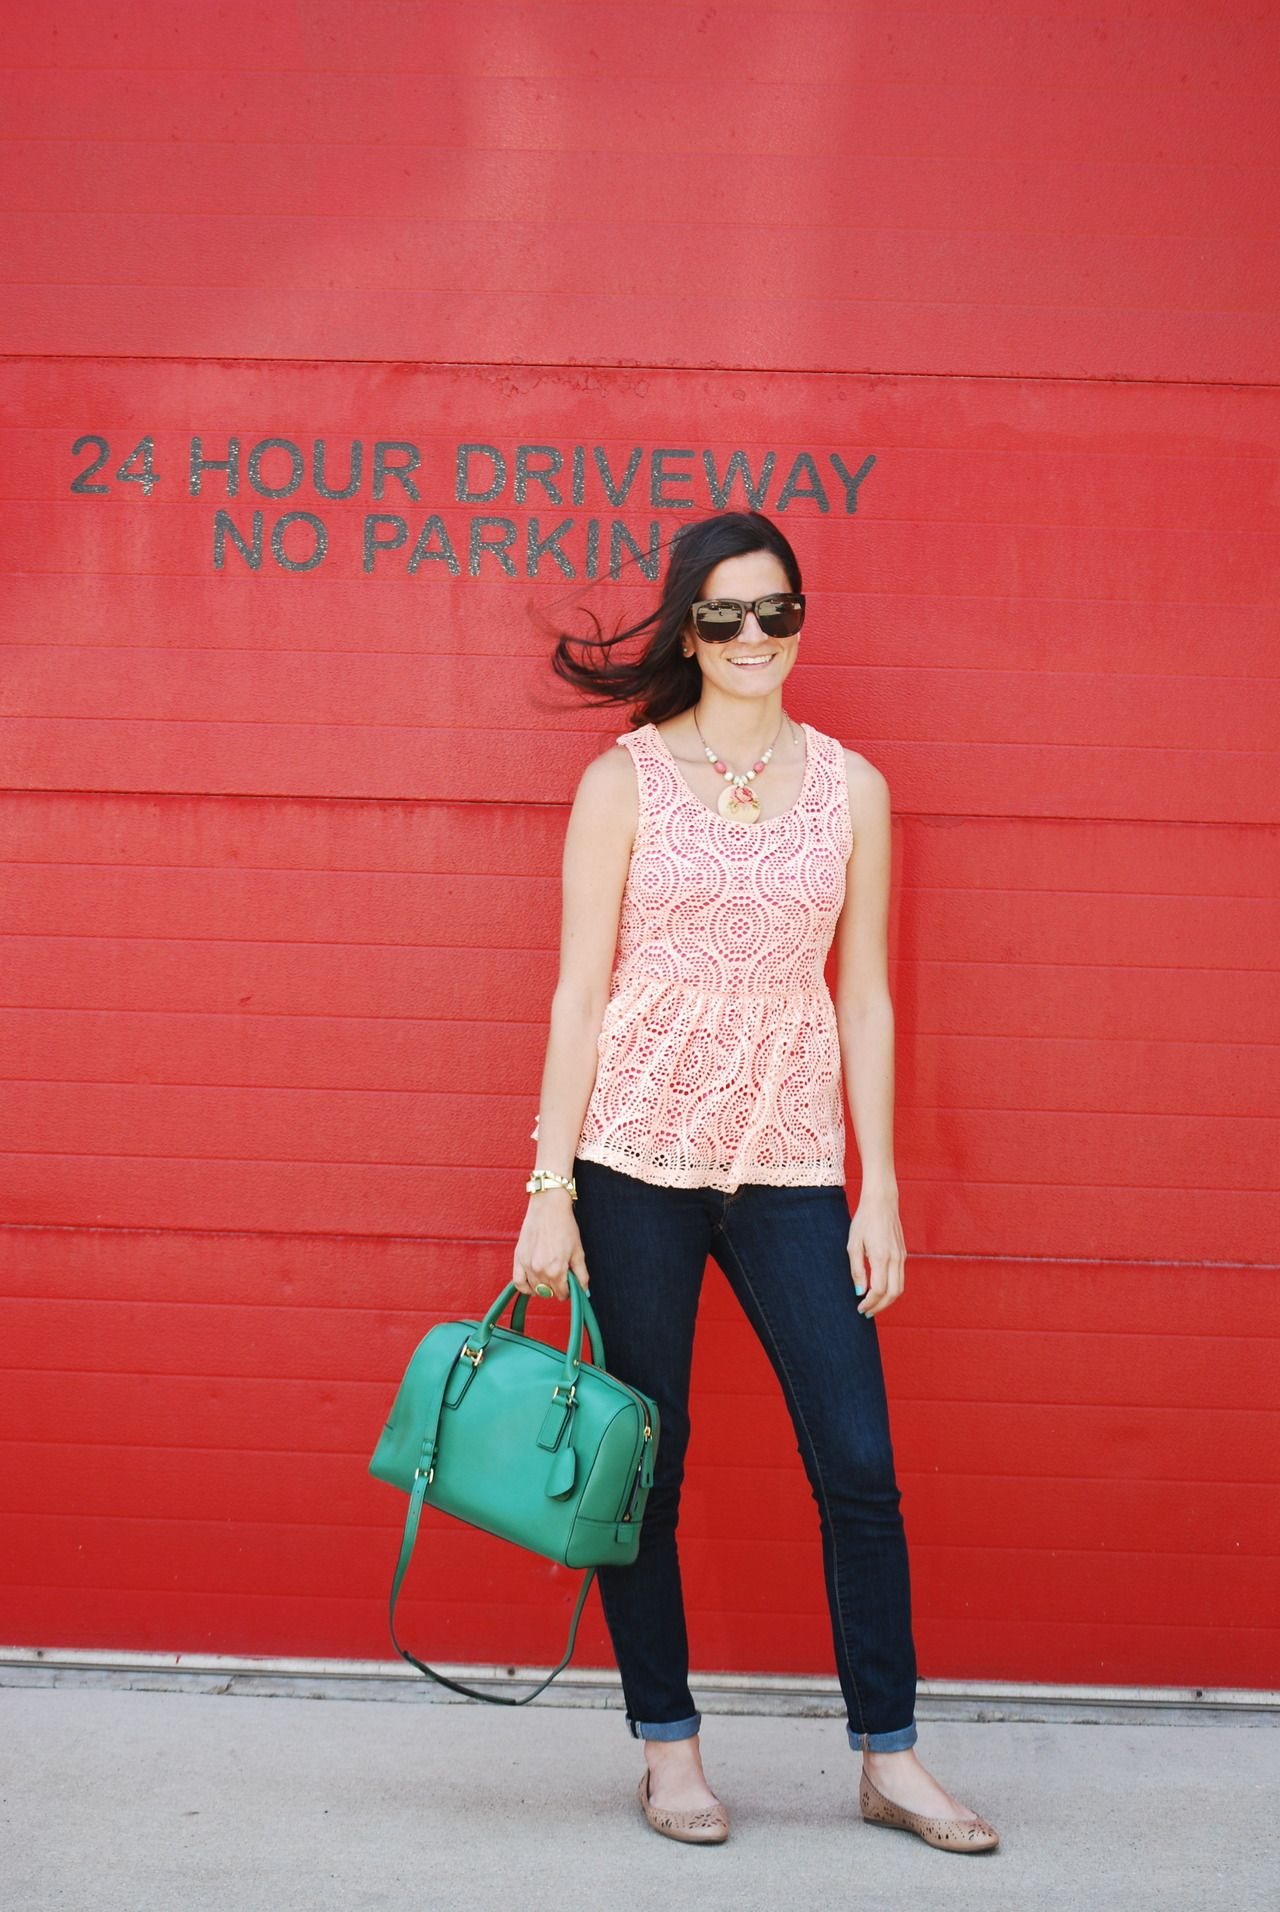 A pair of Gap jeans and flats as featured on the blog @Peggy.